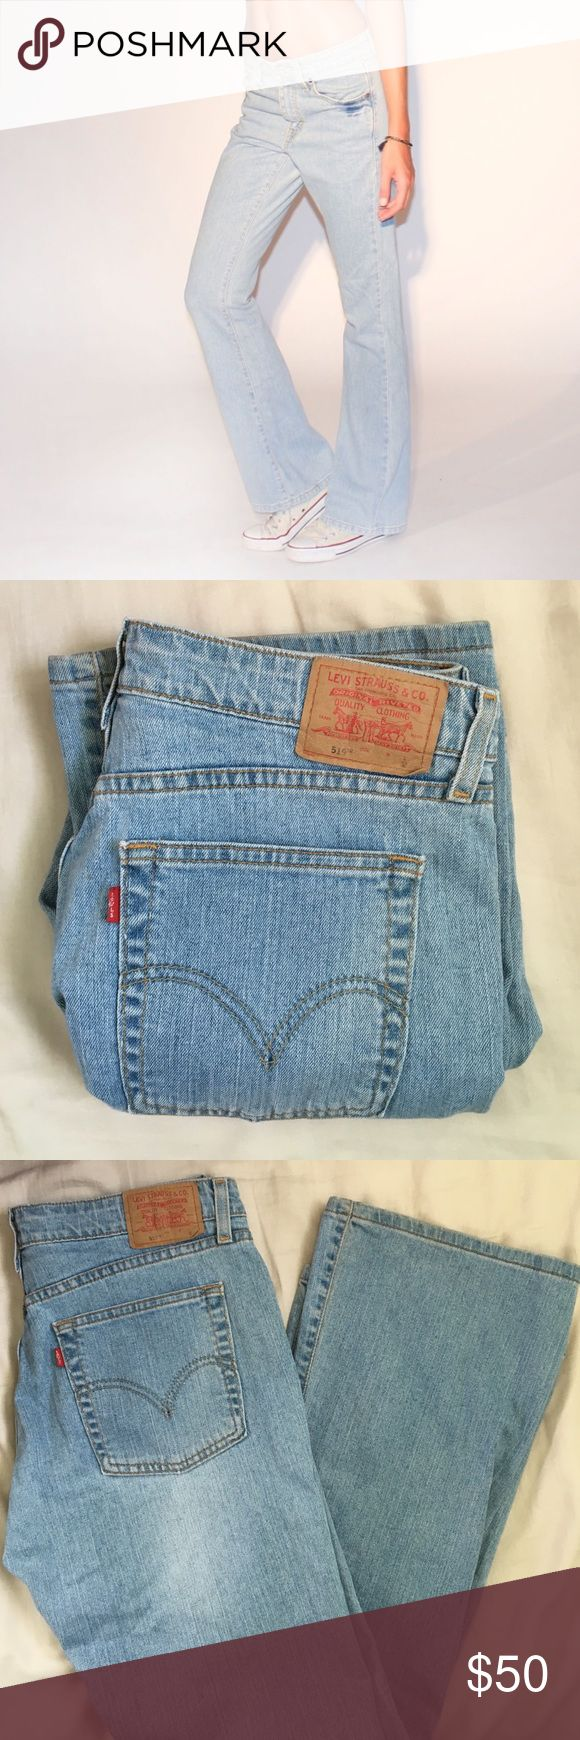 """✌🏼️Vintage light wash Levi's 519 low flare jeans Vintage light wash denim Levi's 519 low flare bell bottom jeans. Hippie vibes. Gorgeous color. ✌🌈 Size 28 (measured from front seam to seam.) Tag says 11 Jr. Low stretch fit. 😄 Waist 14.5"""" across, rise 10"""", inseam 31"""", leg opening 10"""", hips 20"""". Use measurements. ❗️Not responsible for jeans not fitting.❗️ Levi's Jeans Flare & Wide Leg"""